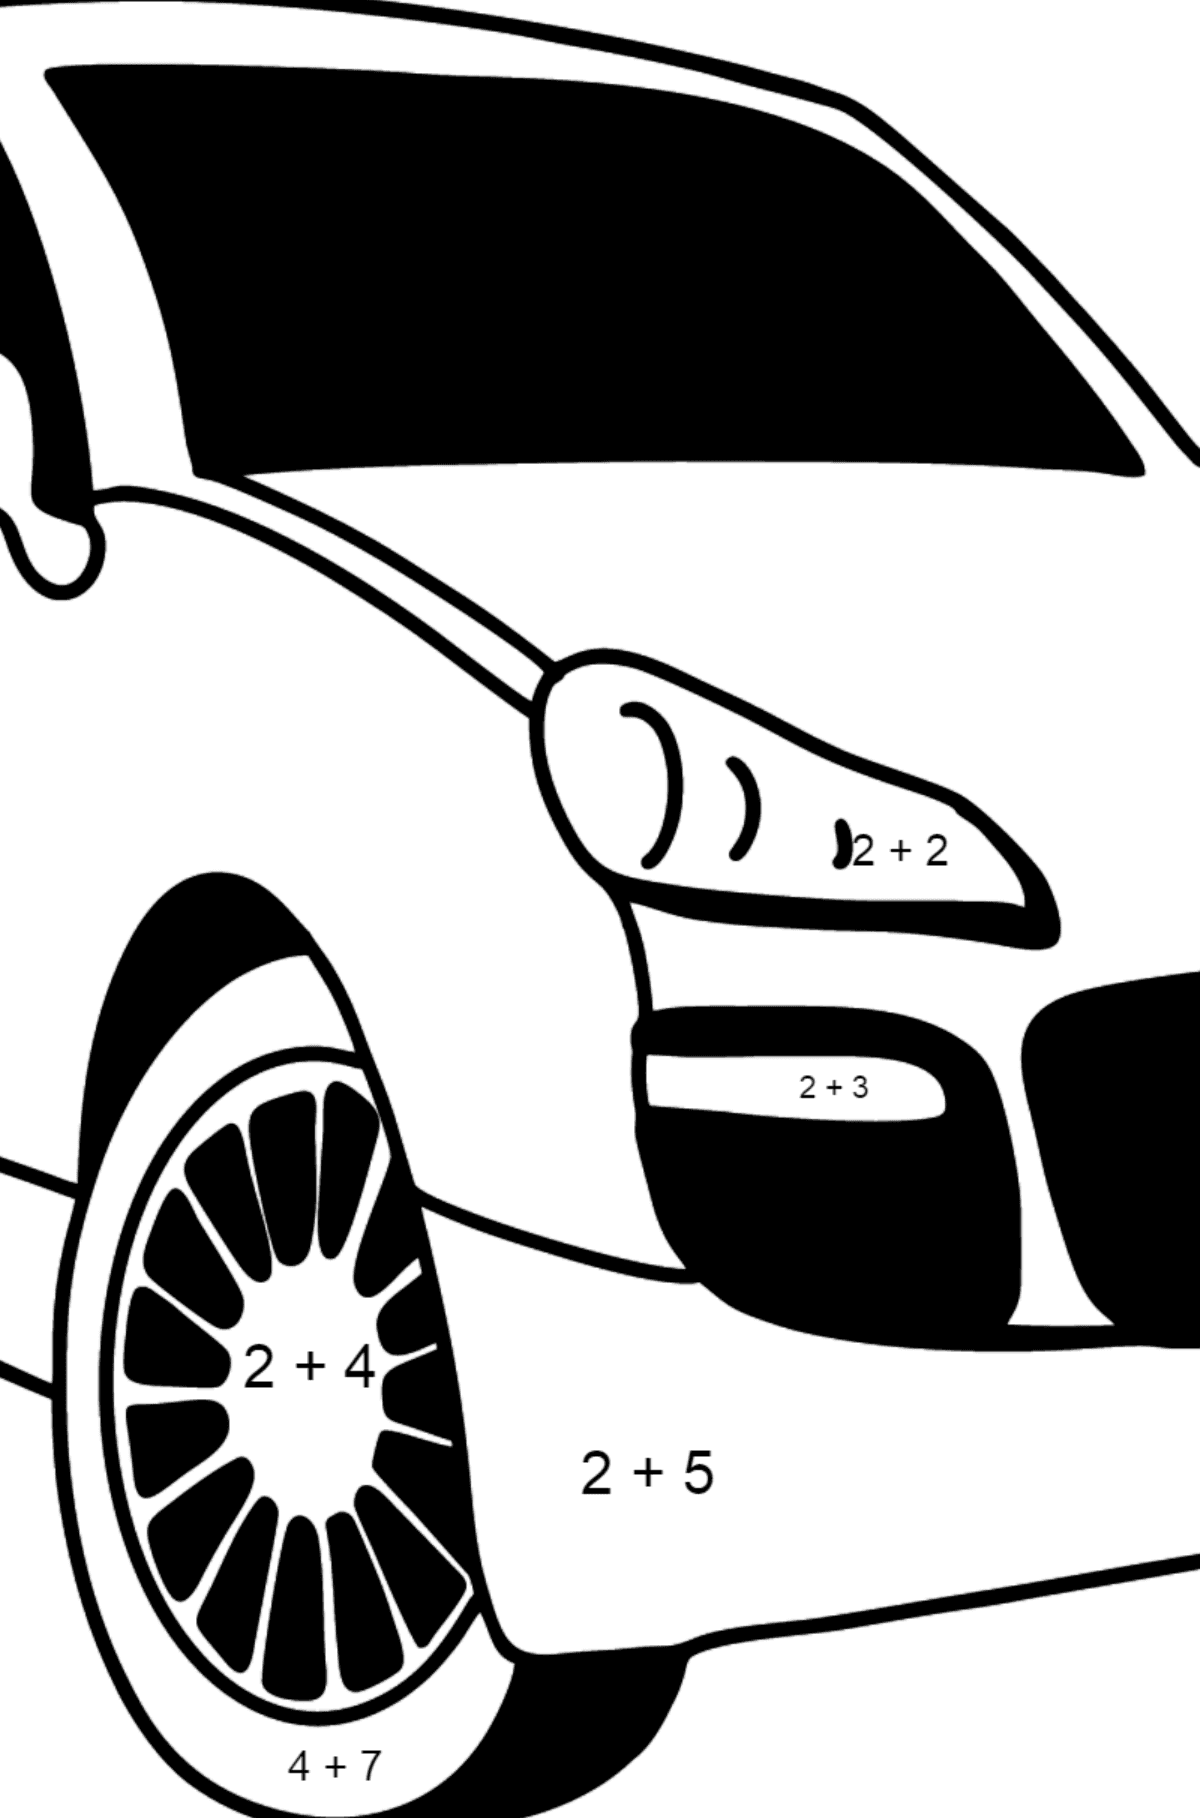 Porsche Cayenne Crossover coloring page - Math Coloring - Addition for Kids